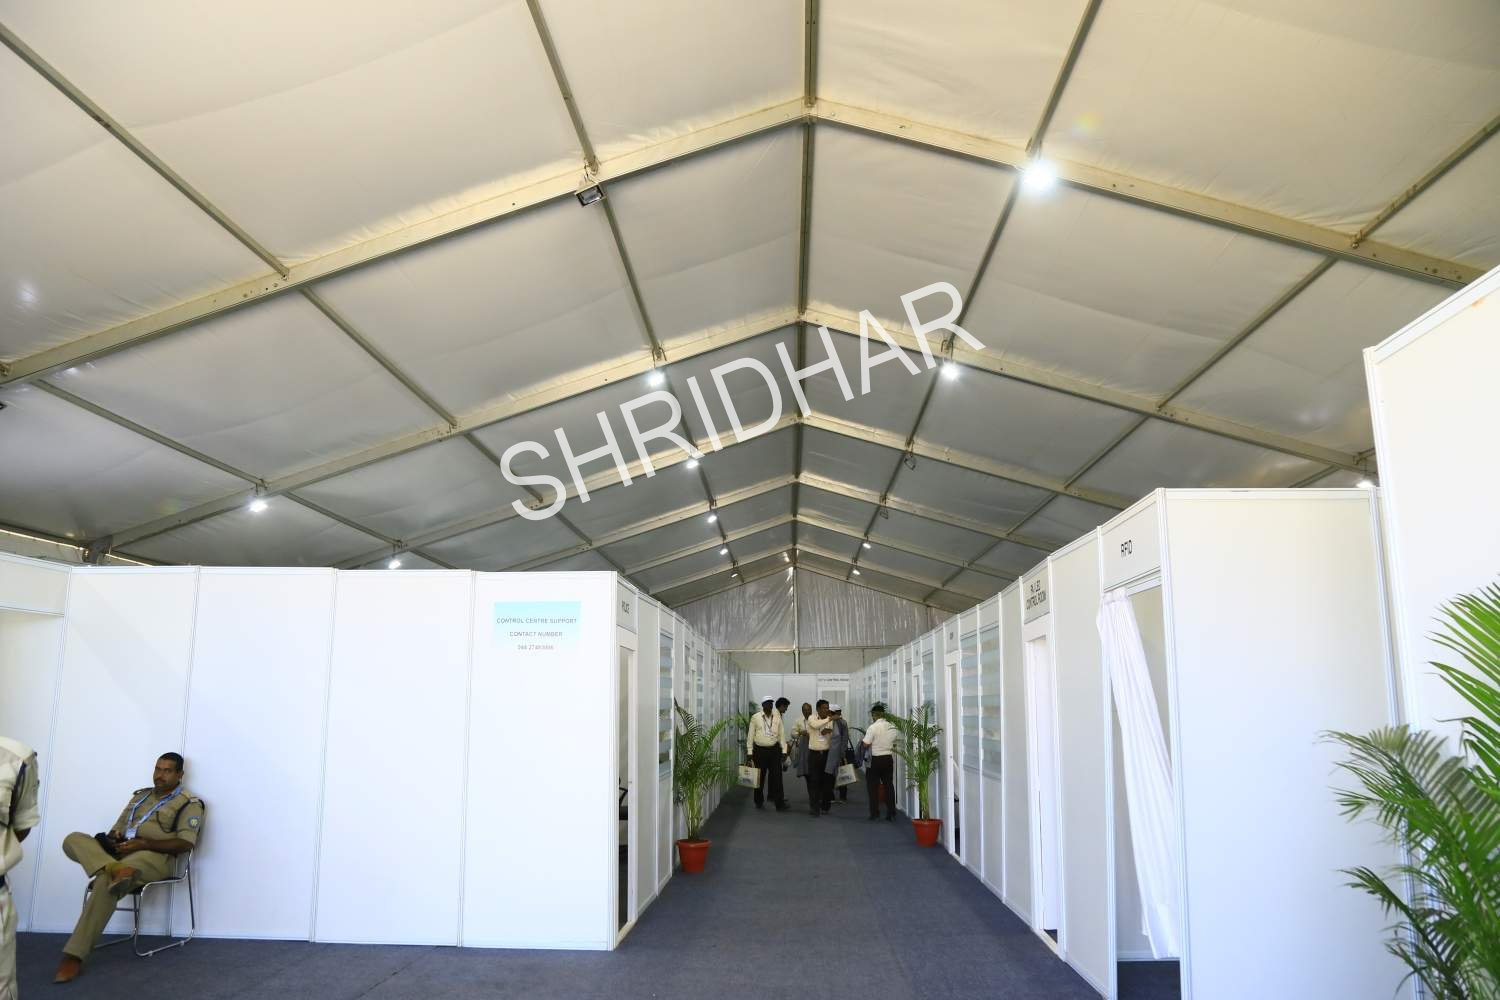 exhibition stalls for rent for hire in bangalore shridhar tent house